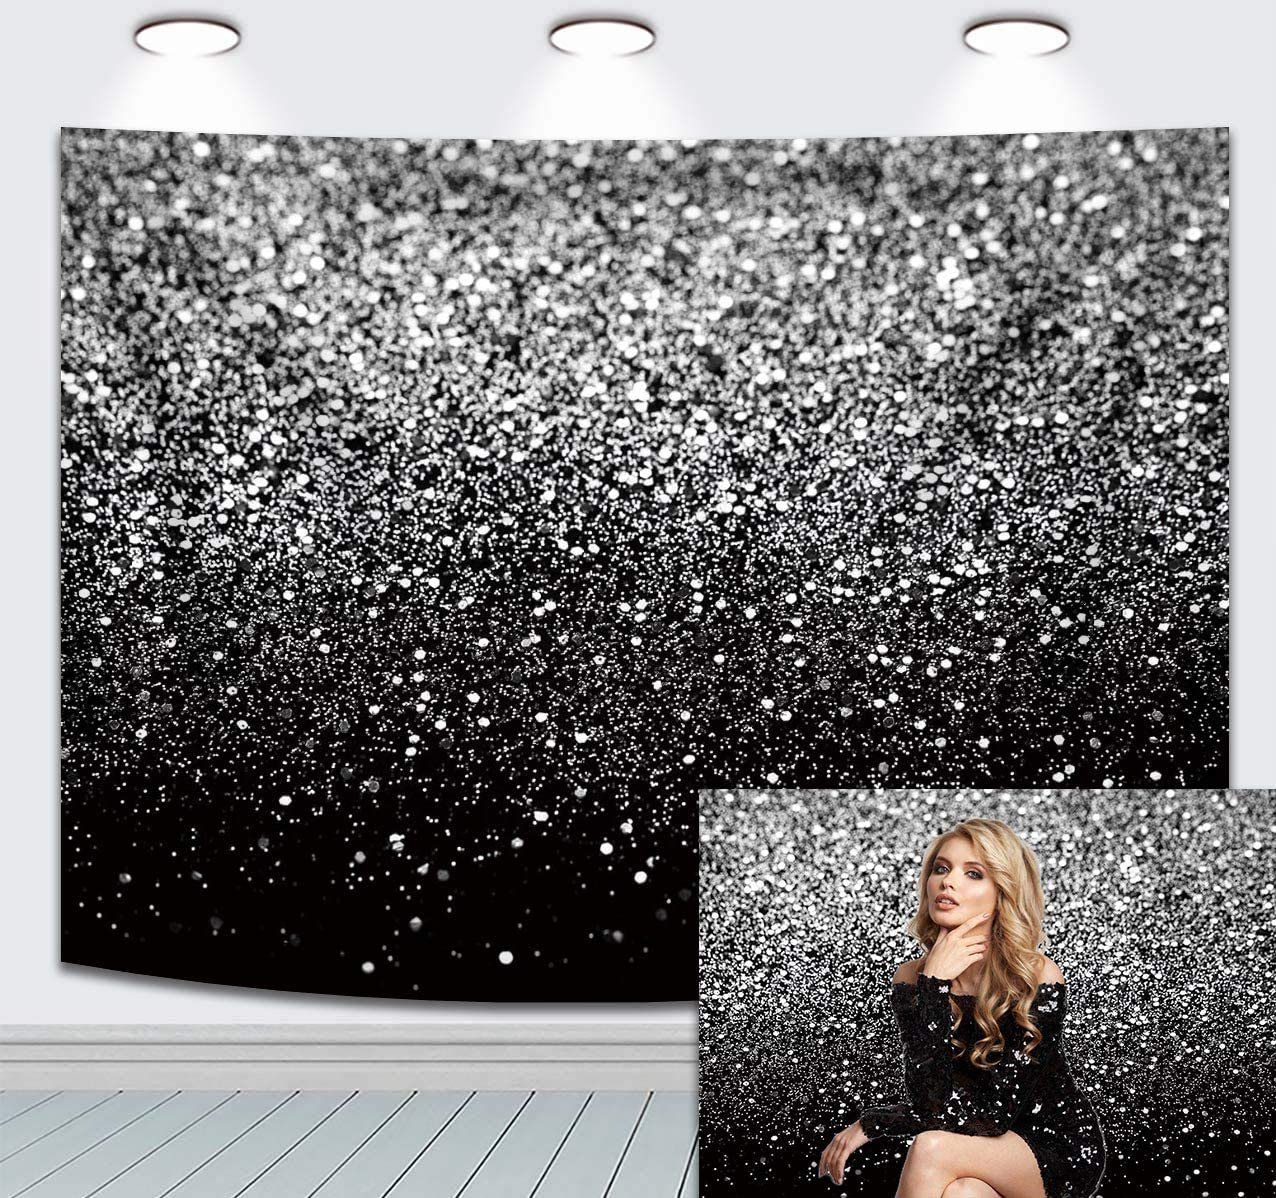 Durable Fabric Photography Backdrop Black Silver Selfie Birthday Party Theme Photo Background Prom Dance Decor Wedding Vintage Abstract Glitter Dots Studio Props